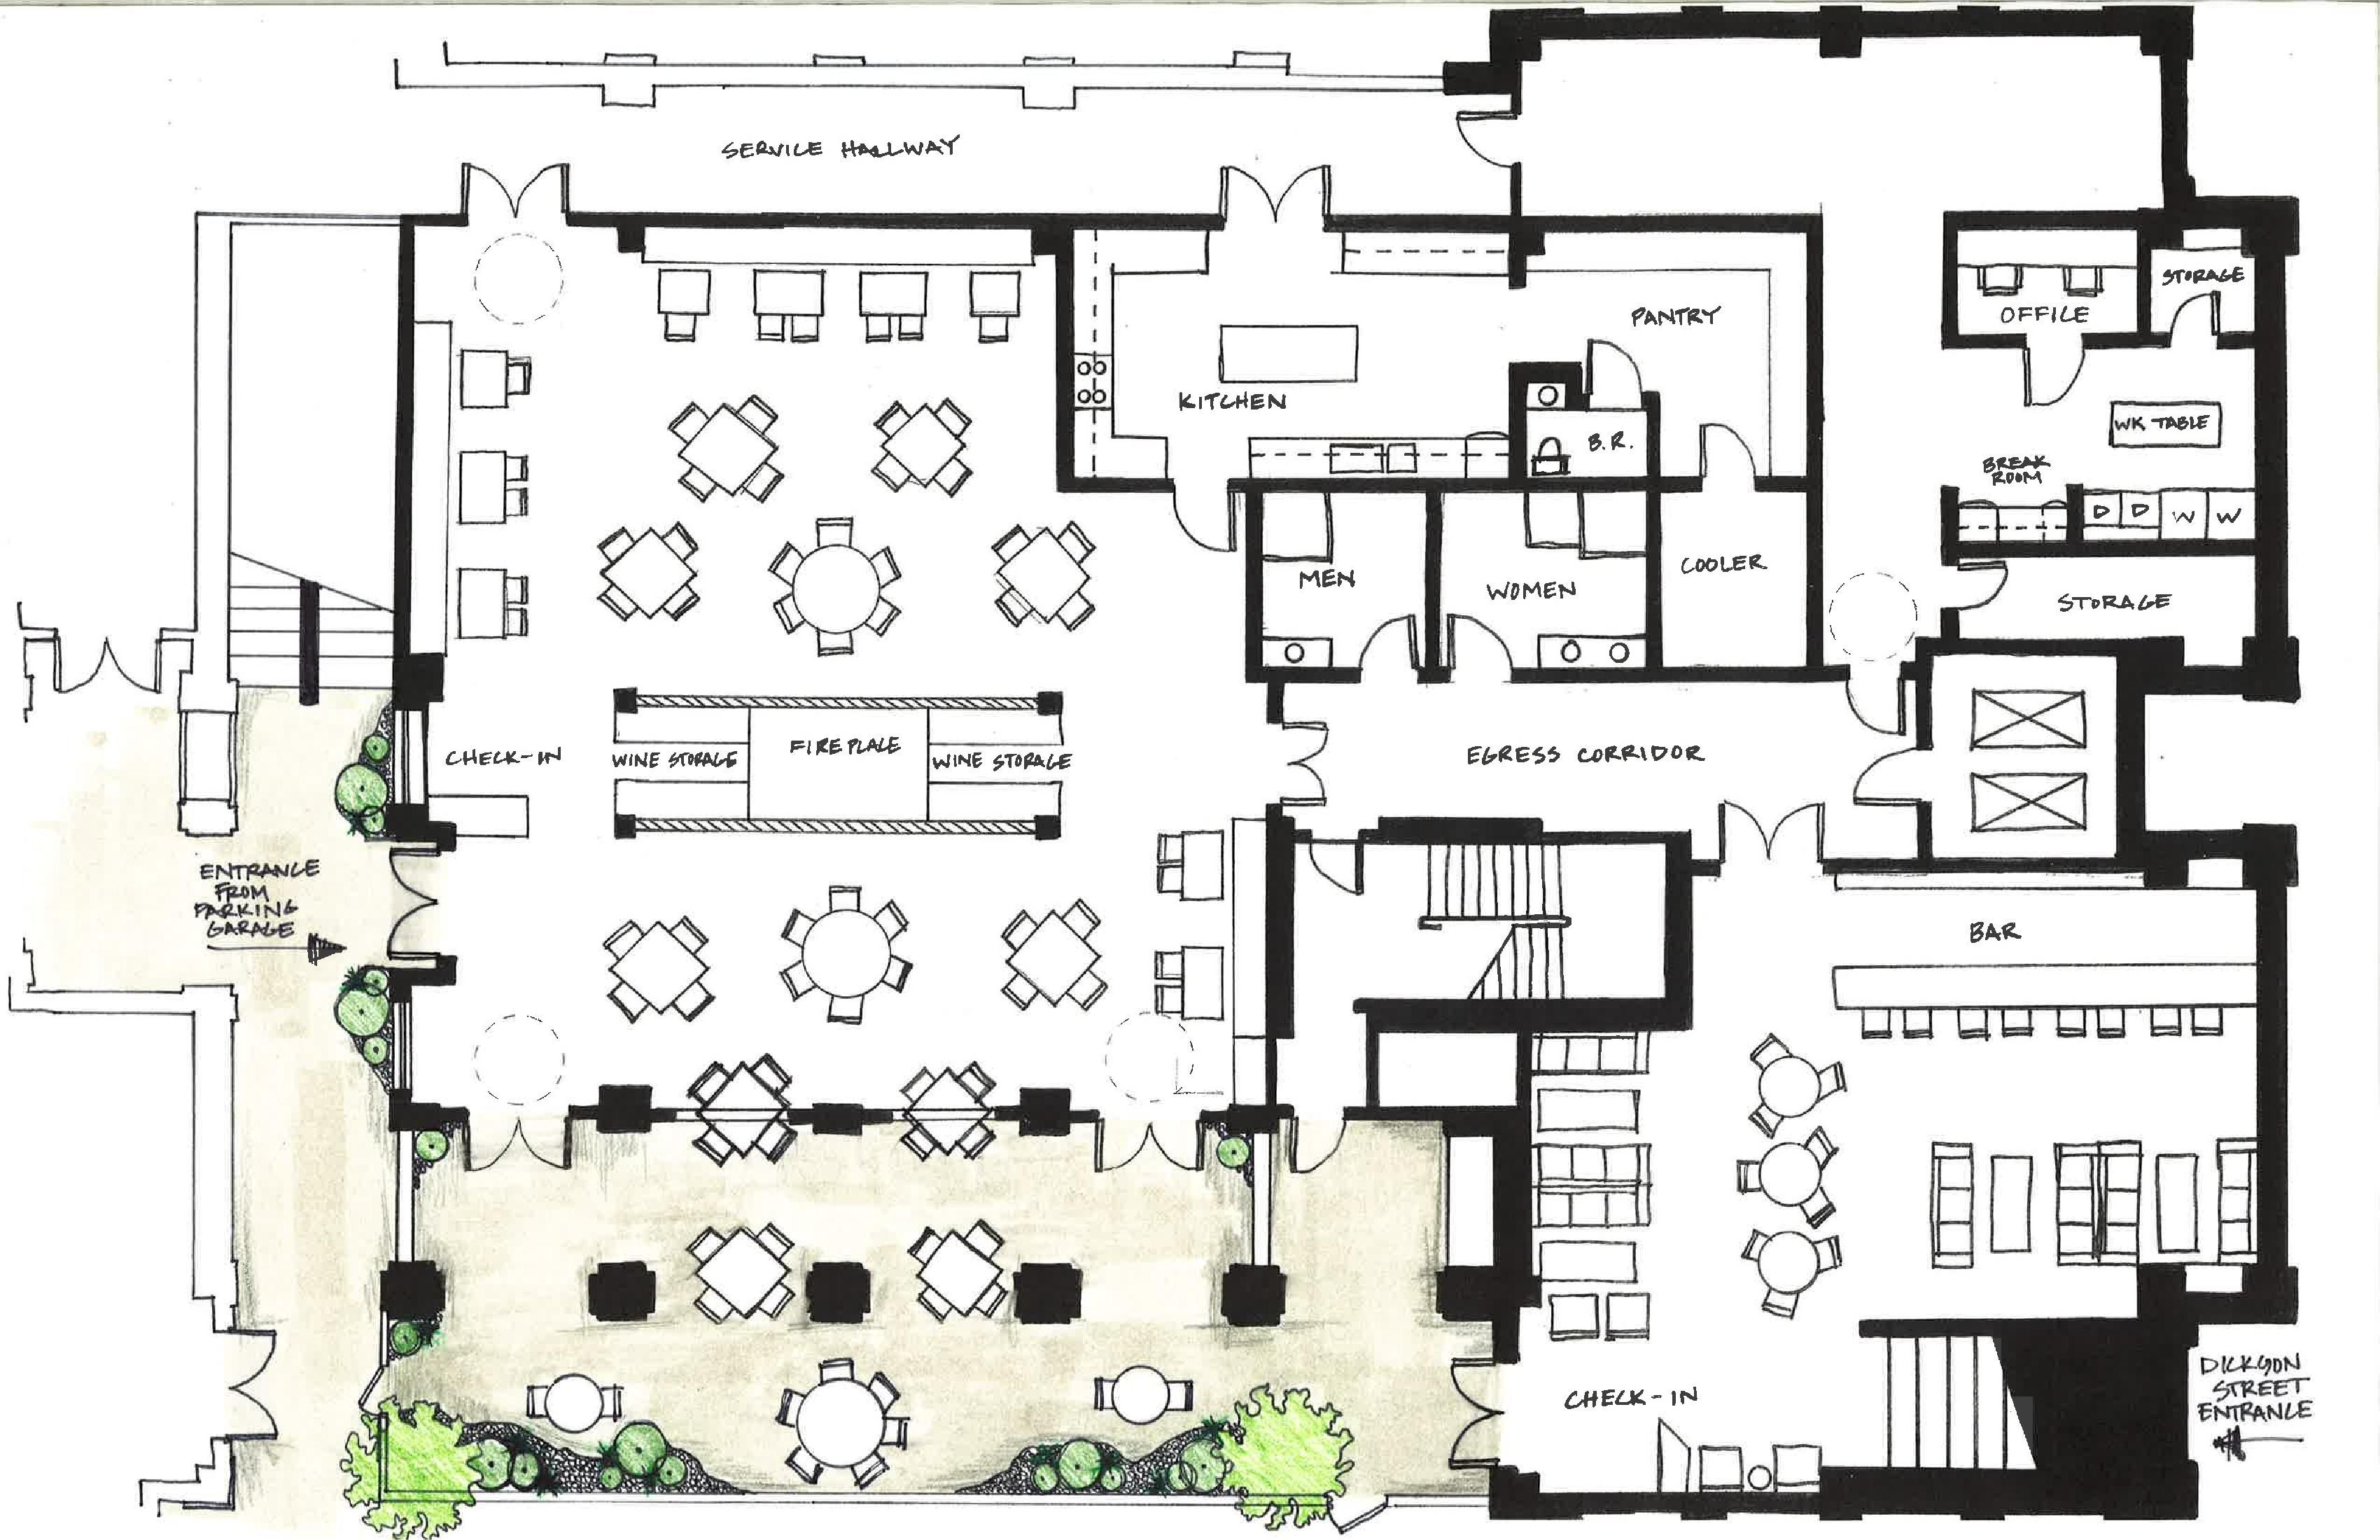 Designing A Restaurant Floor Plan Home Design And Decor Reviews Restaurant Floor Plan Restaurant Plan Restaurant Architecture